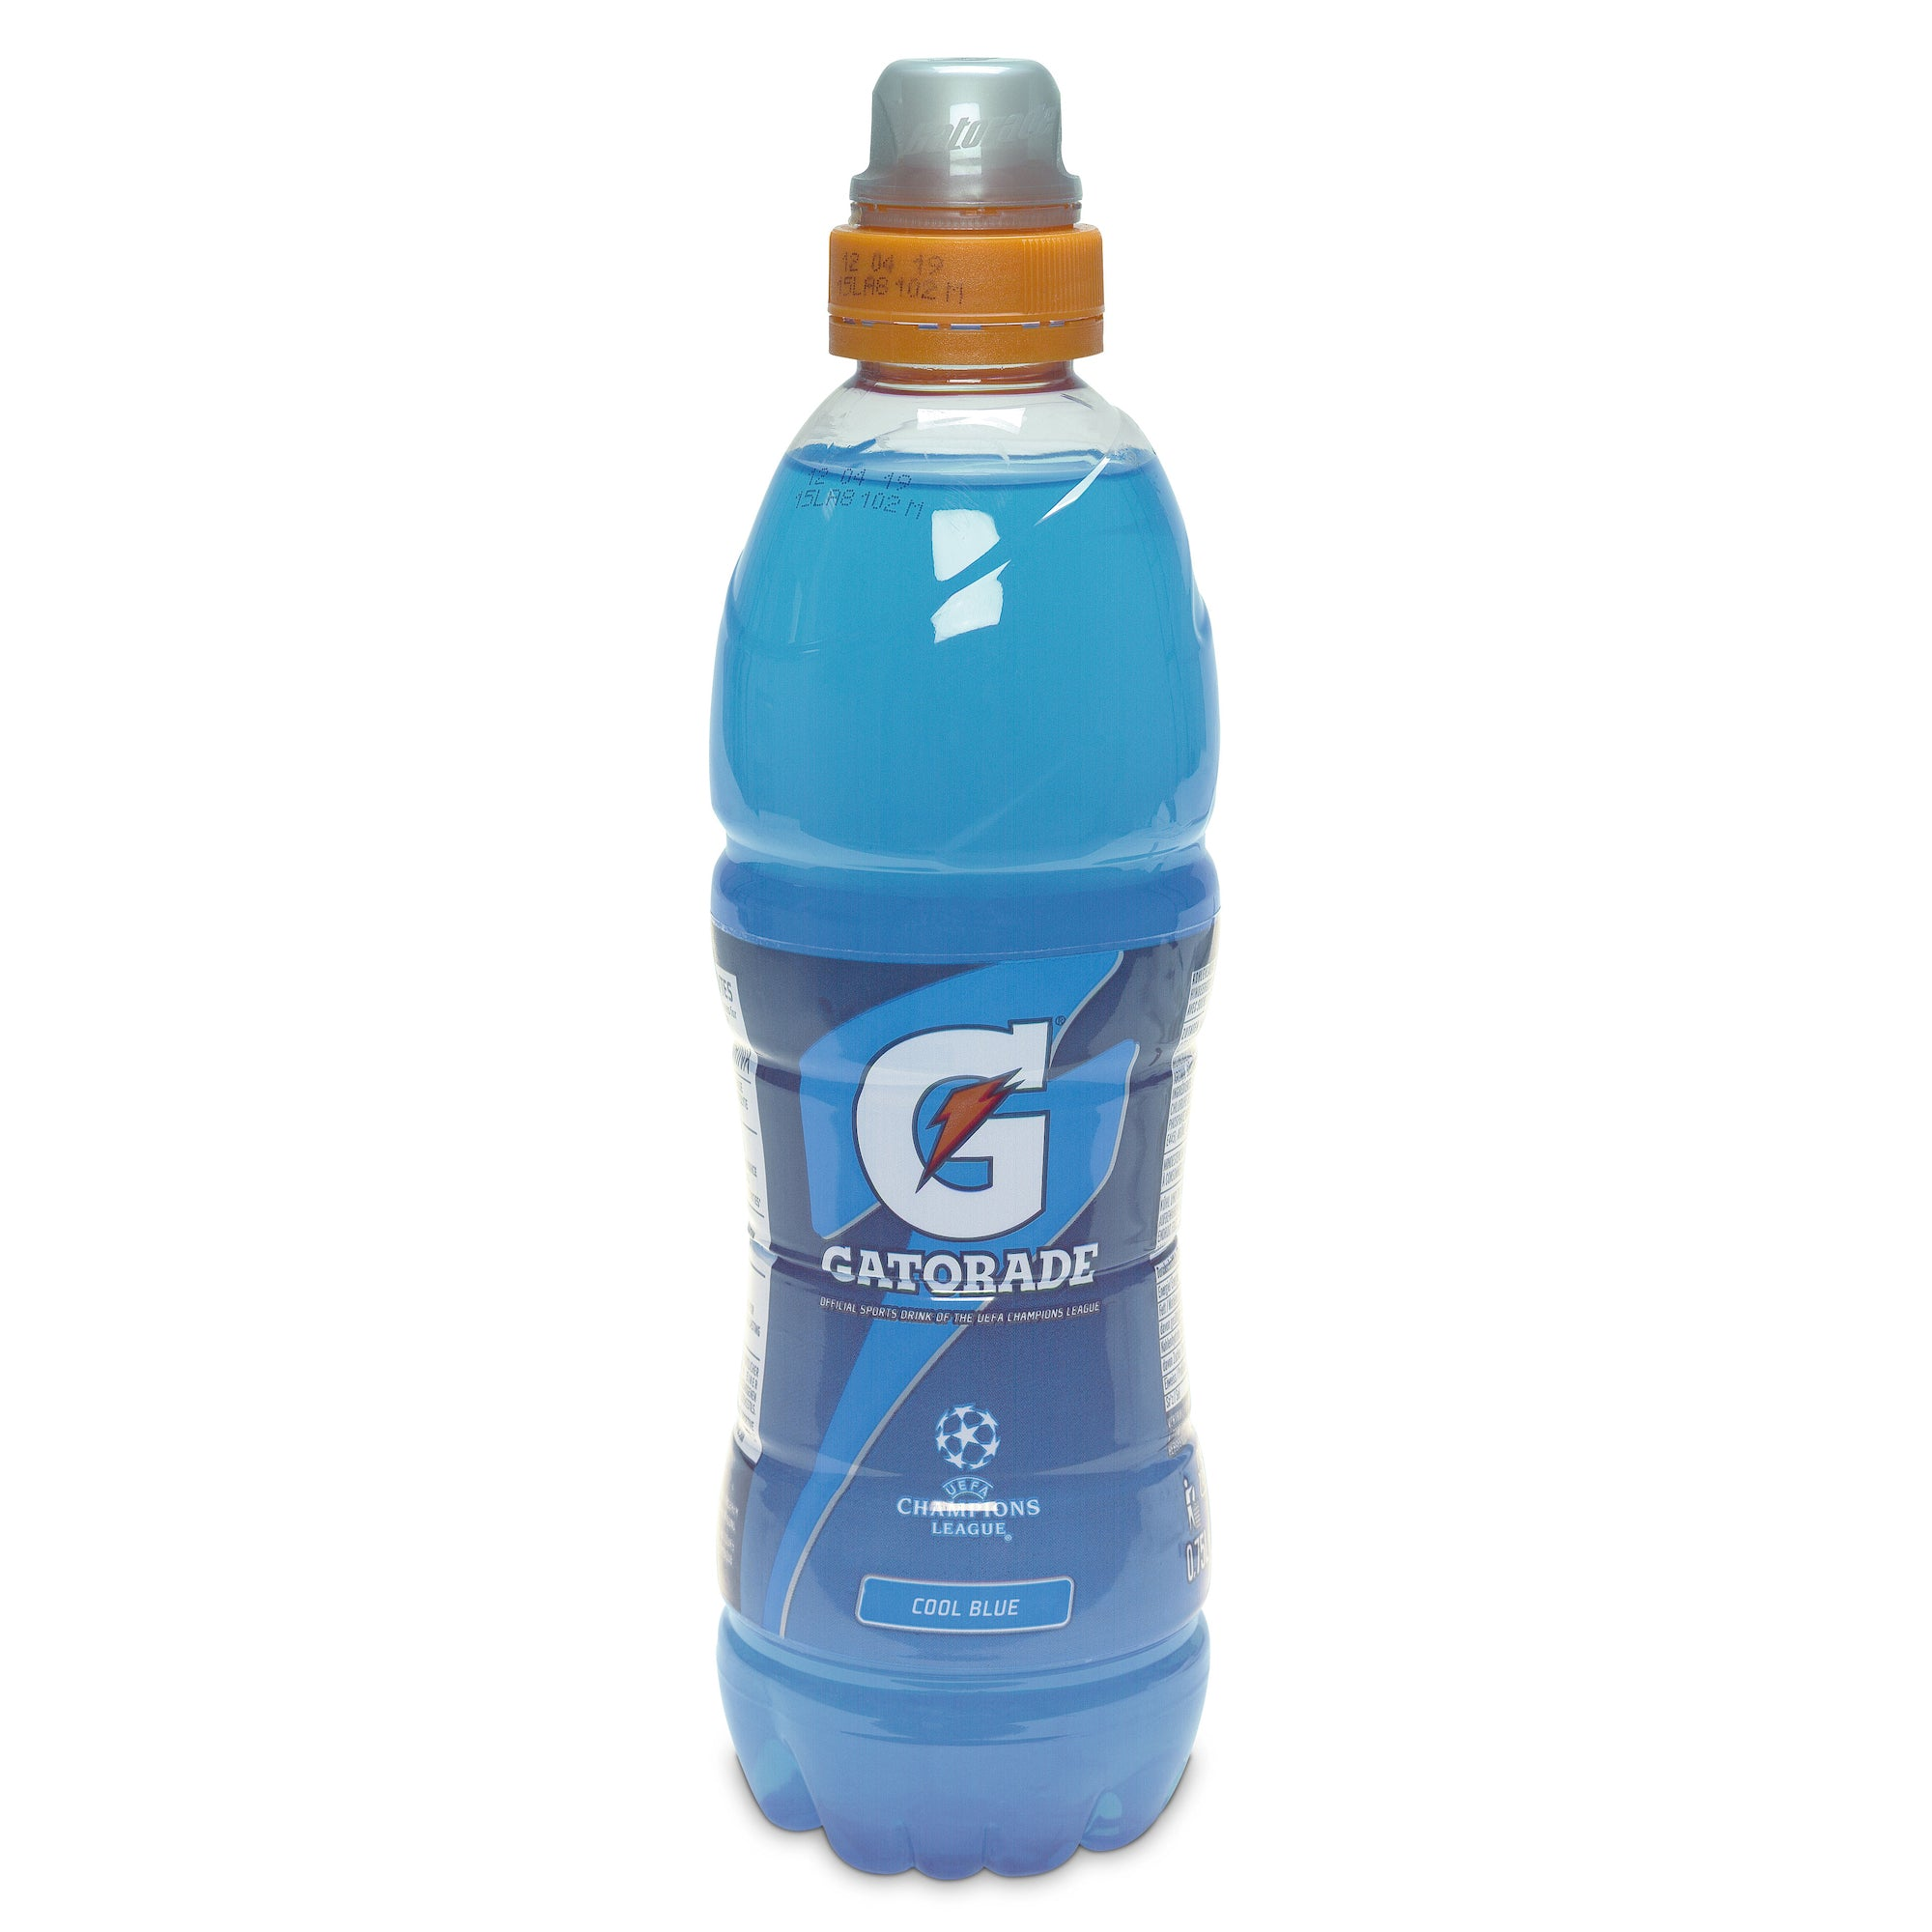 Gatorade Cool Blue 12 x 750ml